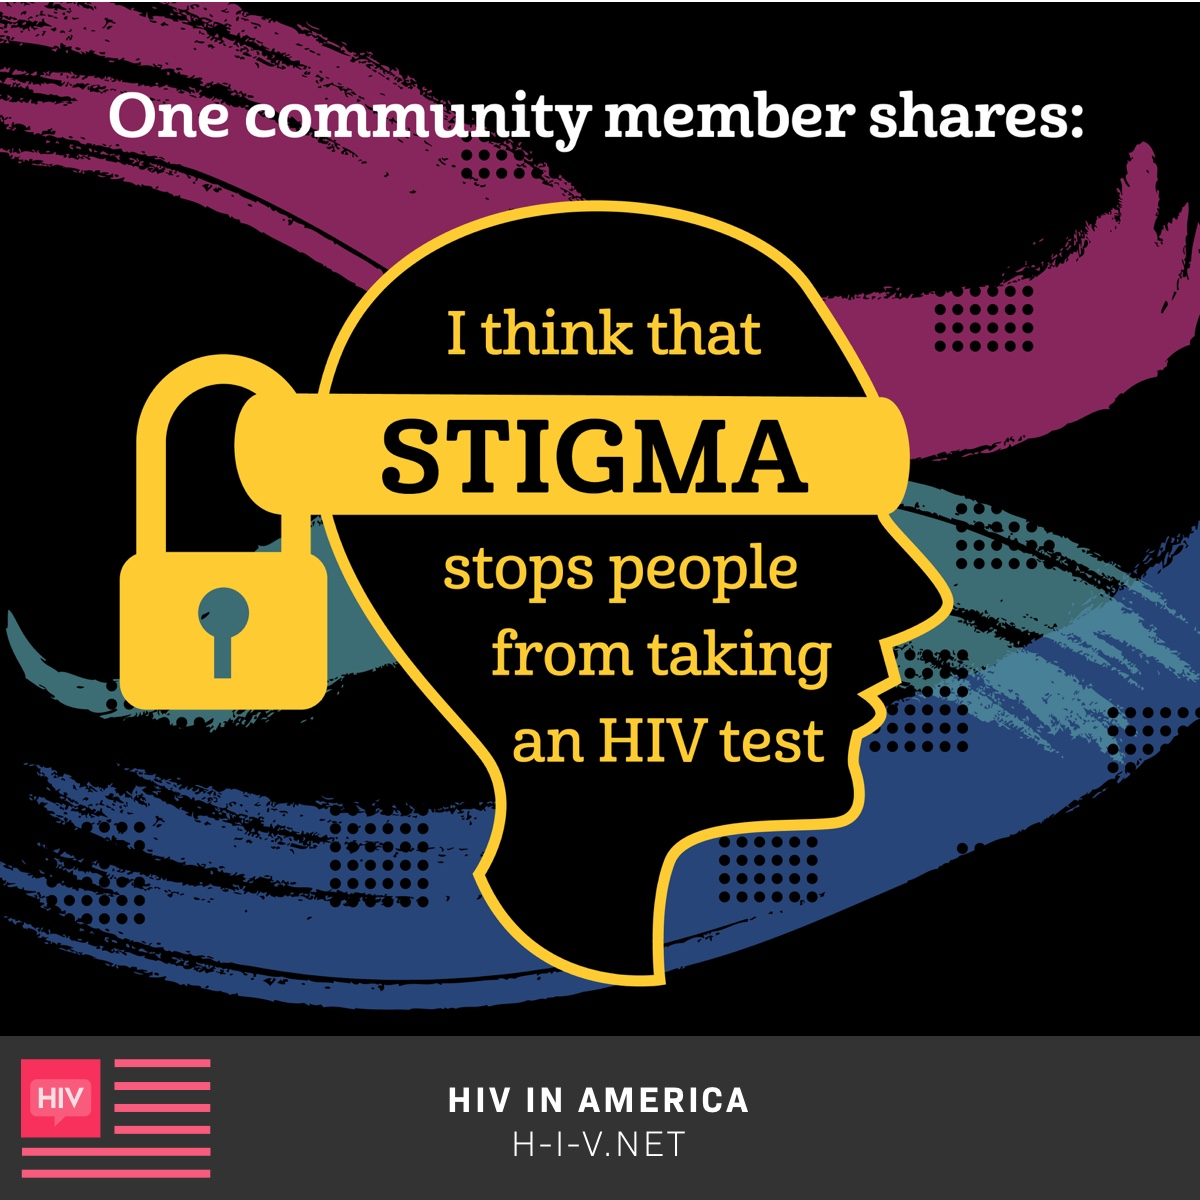 A quote from a community member reading I think that stigma stops people from taking an HIV test